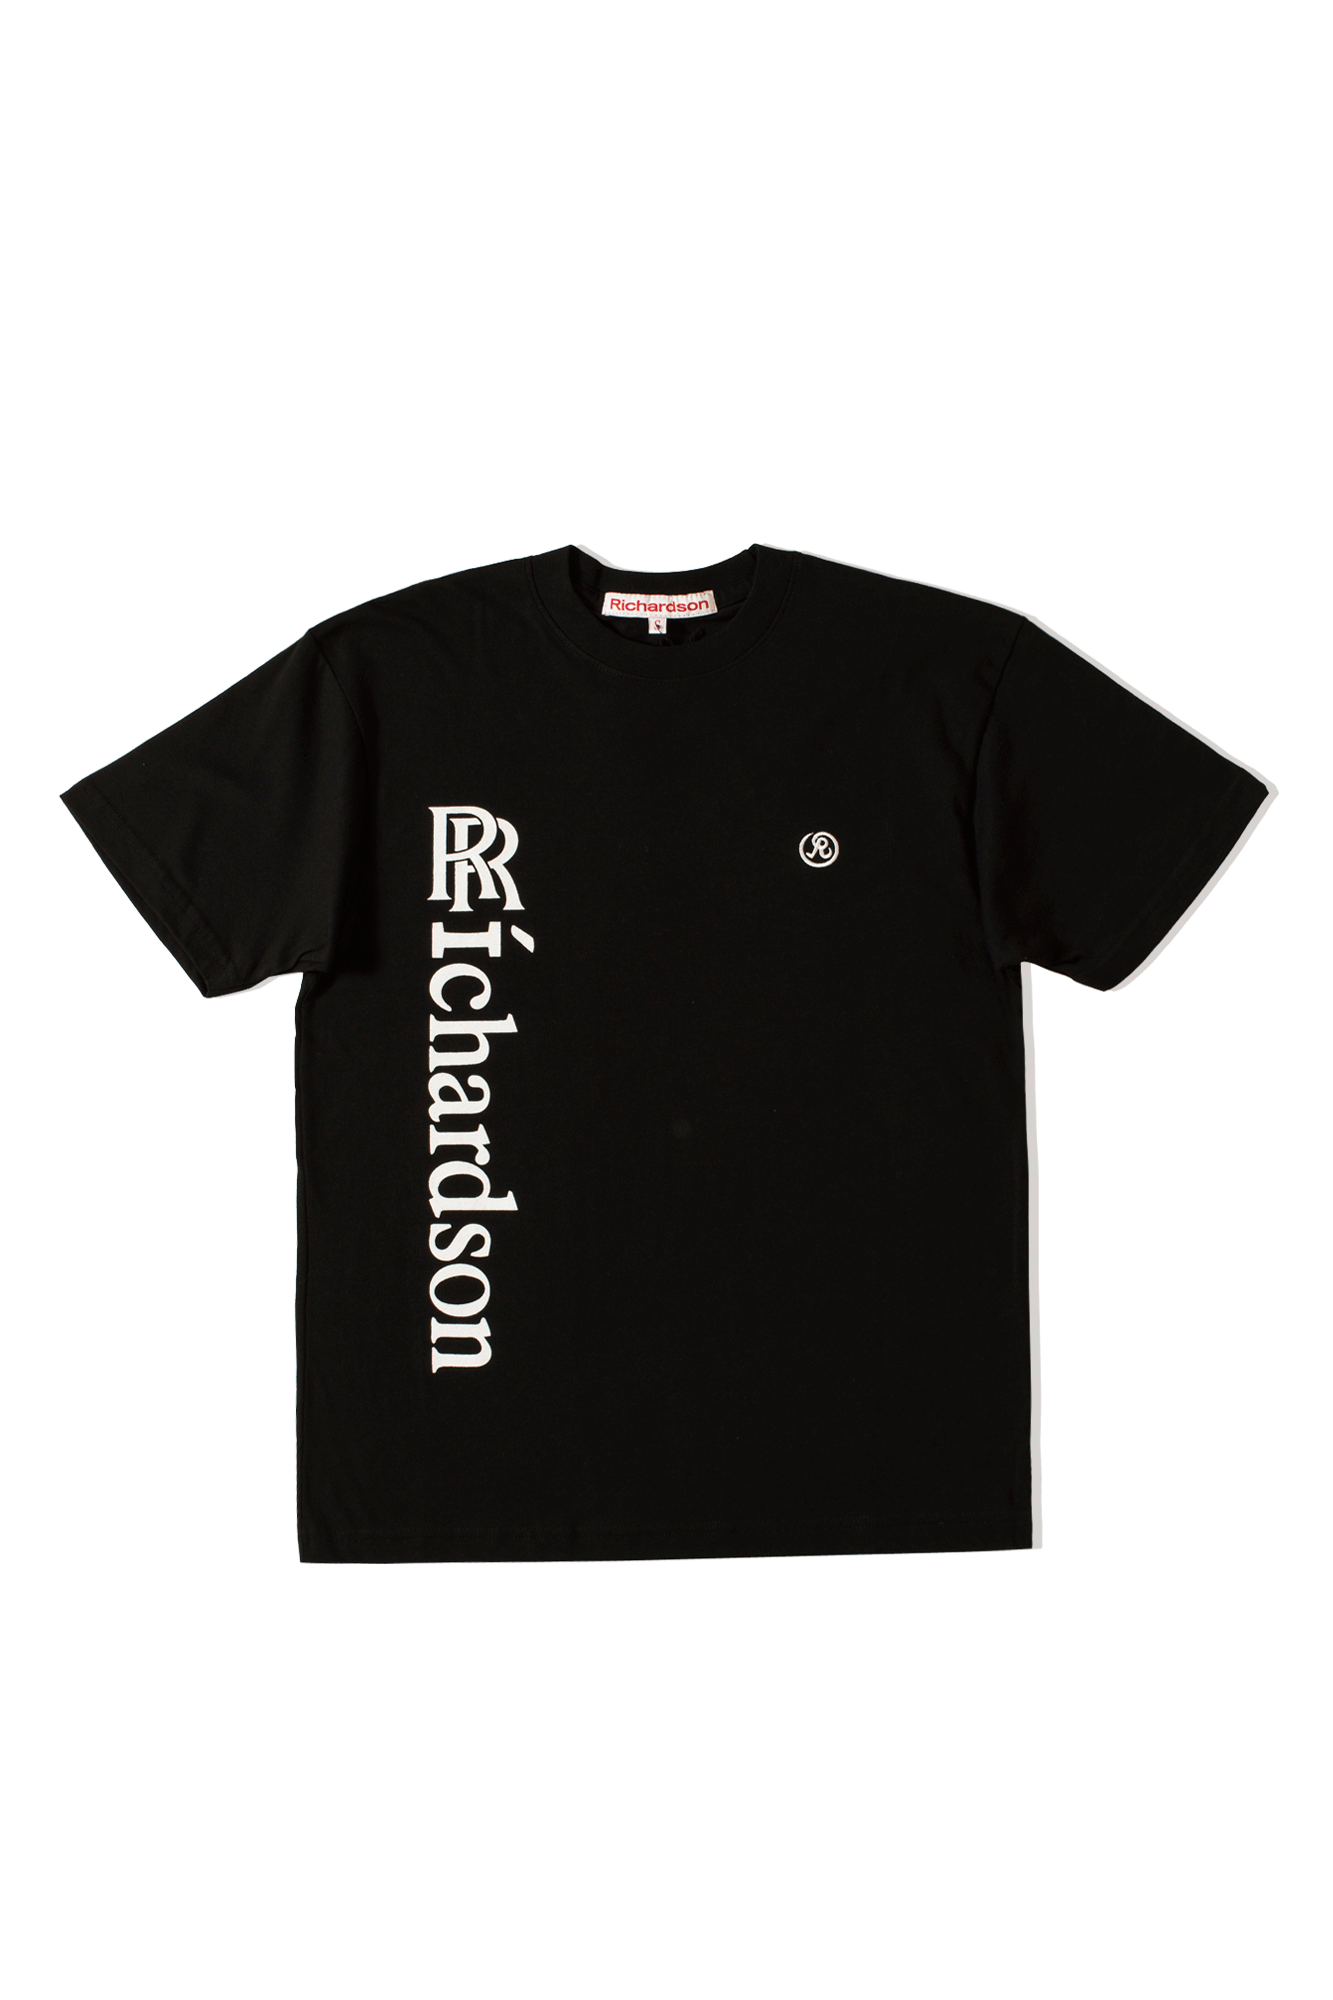 Richardson Rolls Royce T-Shirt Black